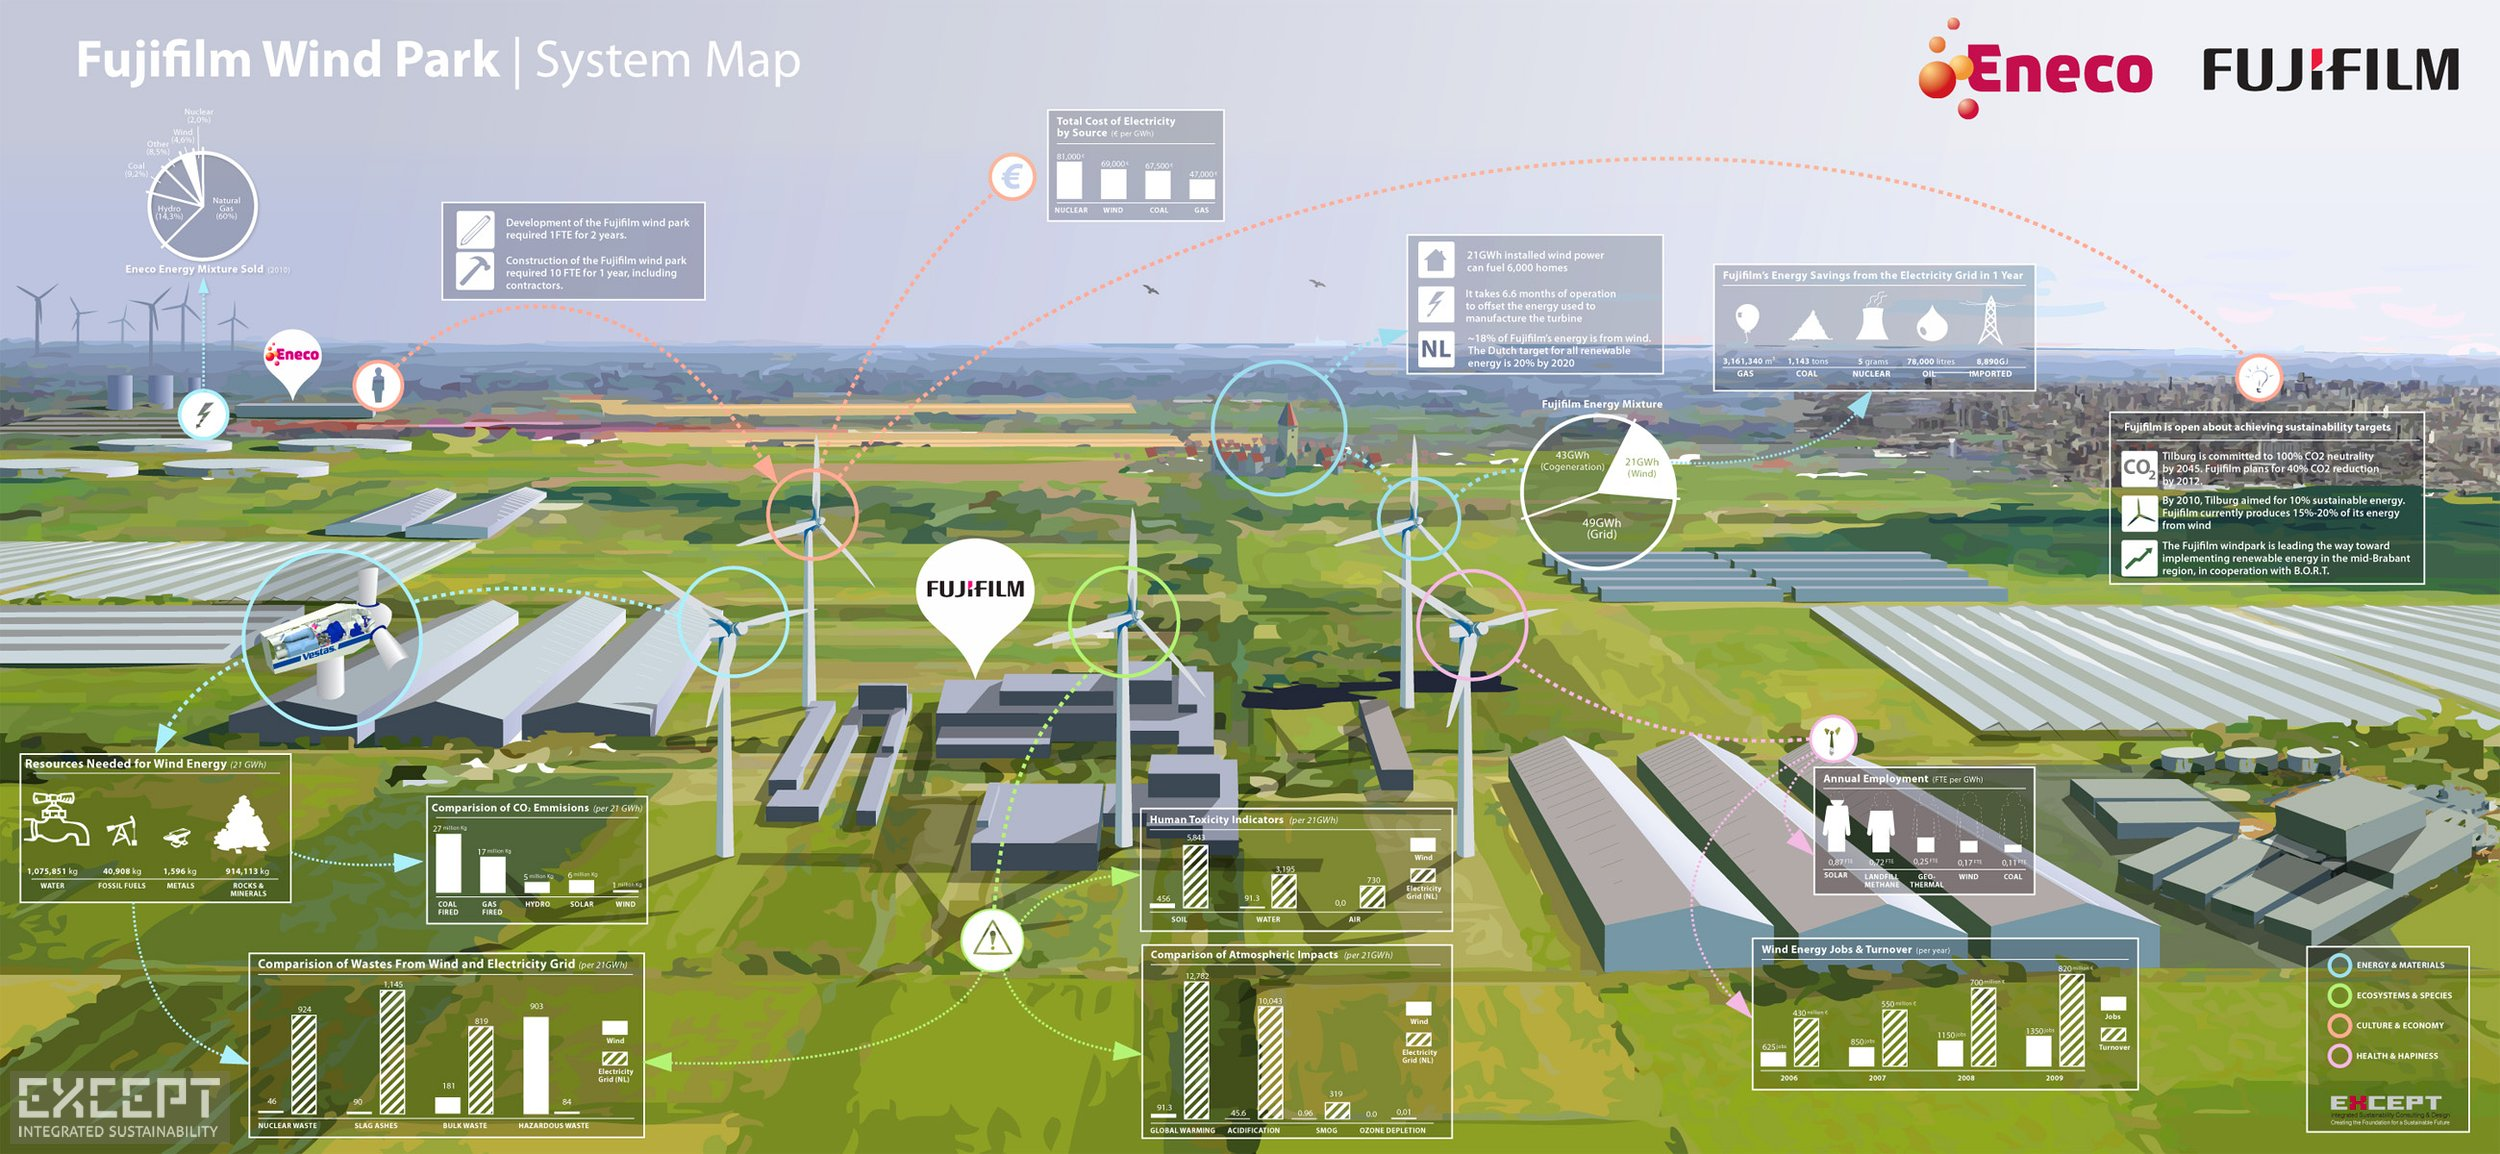 System Map Fujifilm wind Park - System map with the sustainability assessment of a wind turbine park